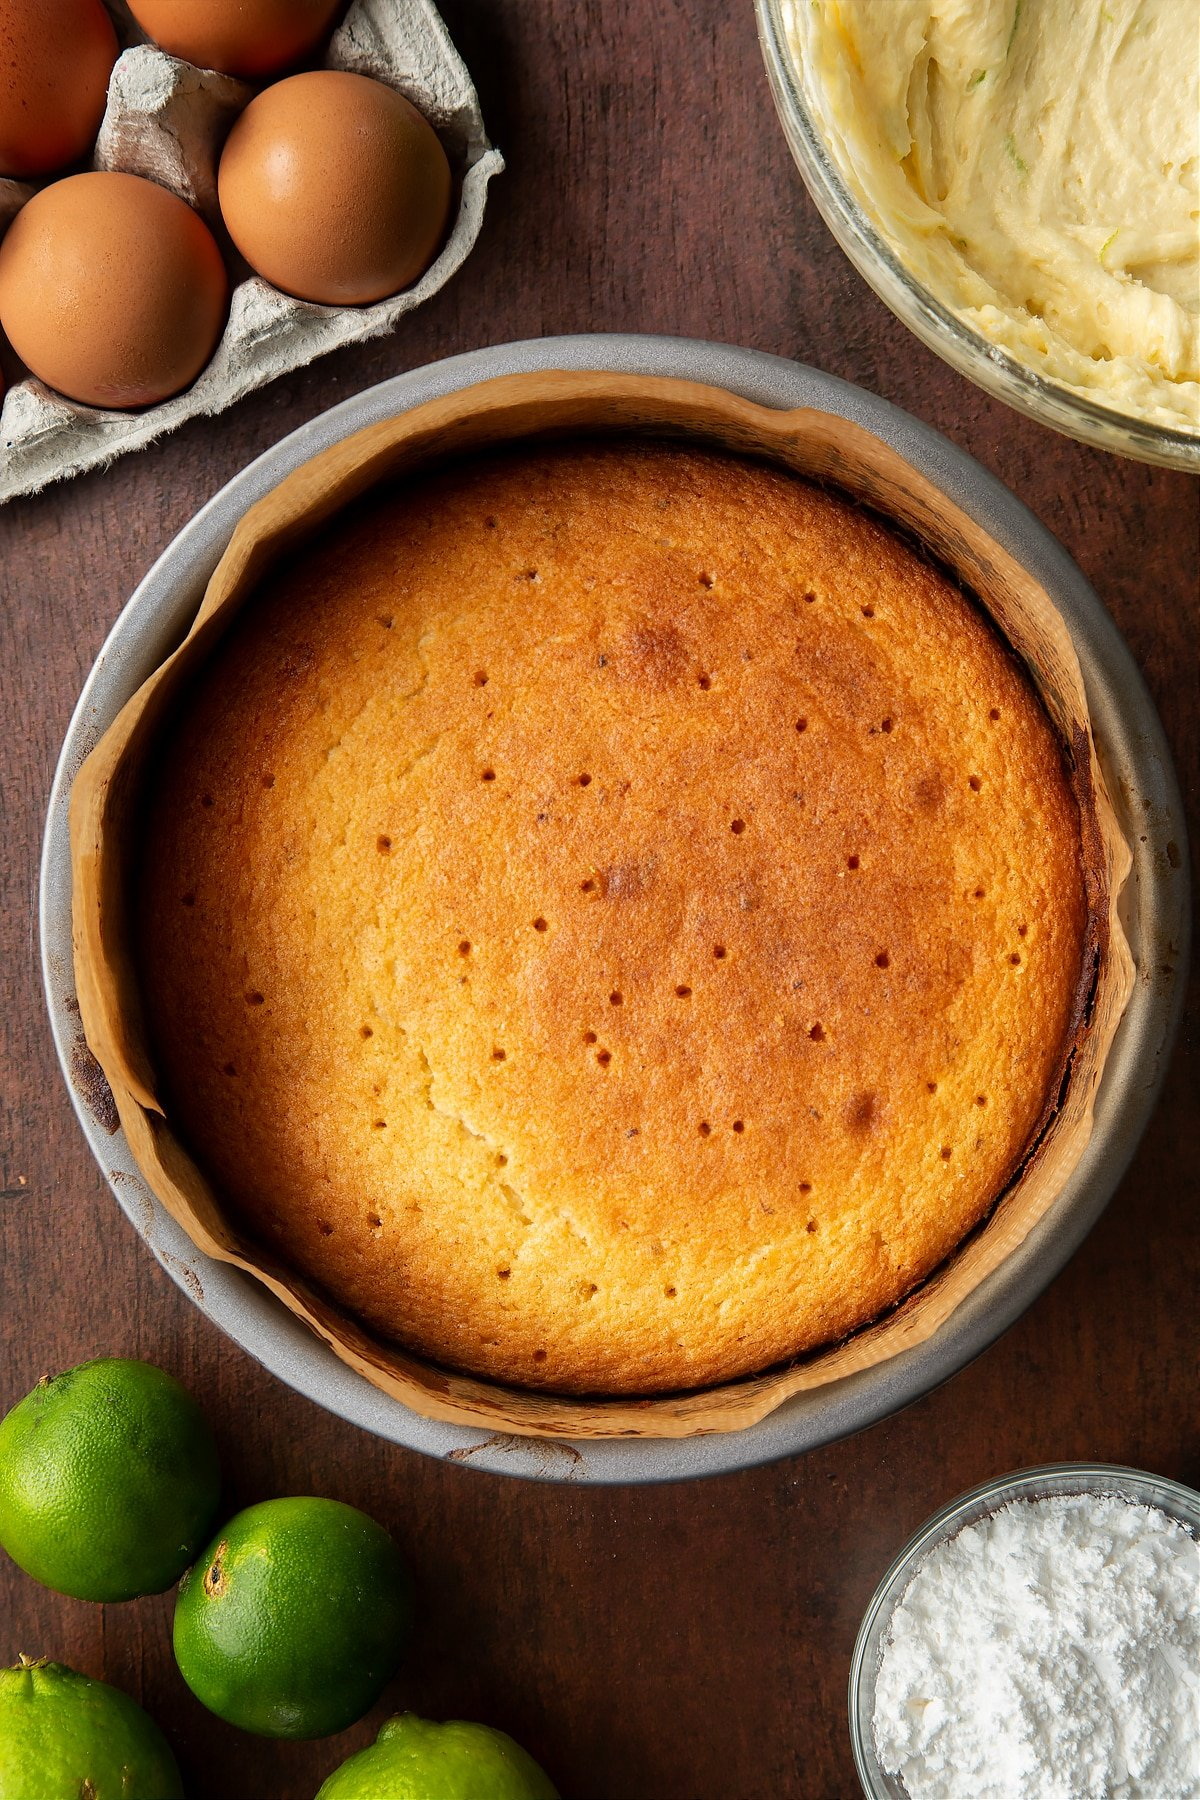 Baked lime drizzle cake in a lined cake tin with holes poked all over the surface. Ingredients to make lime drizzle cake surround the tin.